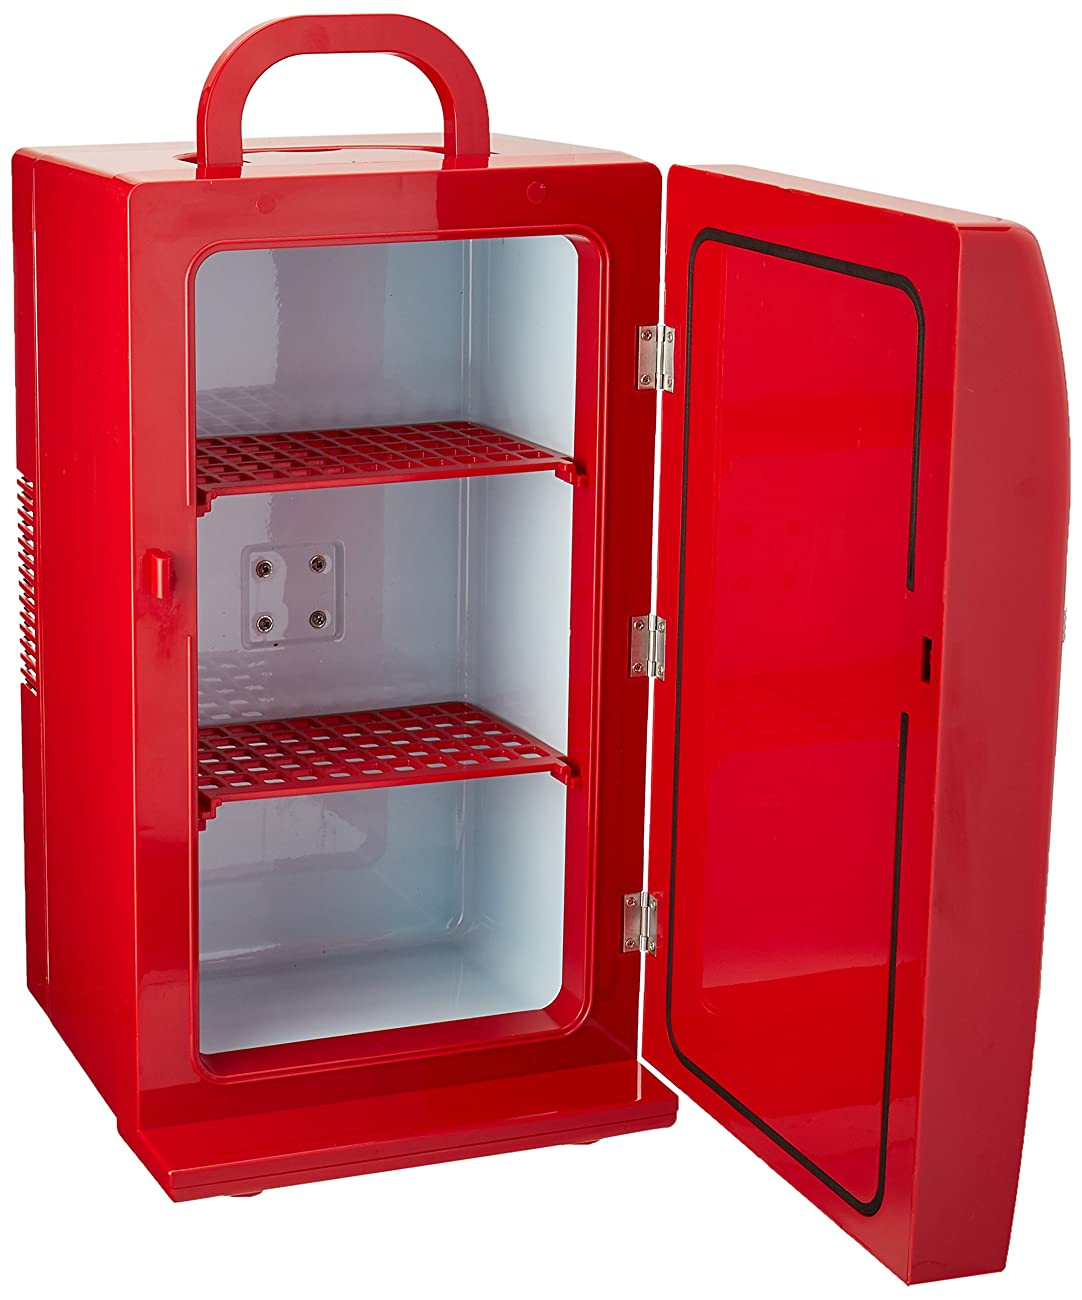 Coca Cola CCR-12 Retro Fridge, Red 1